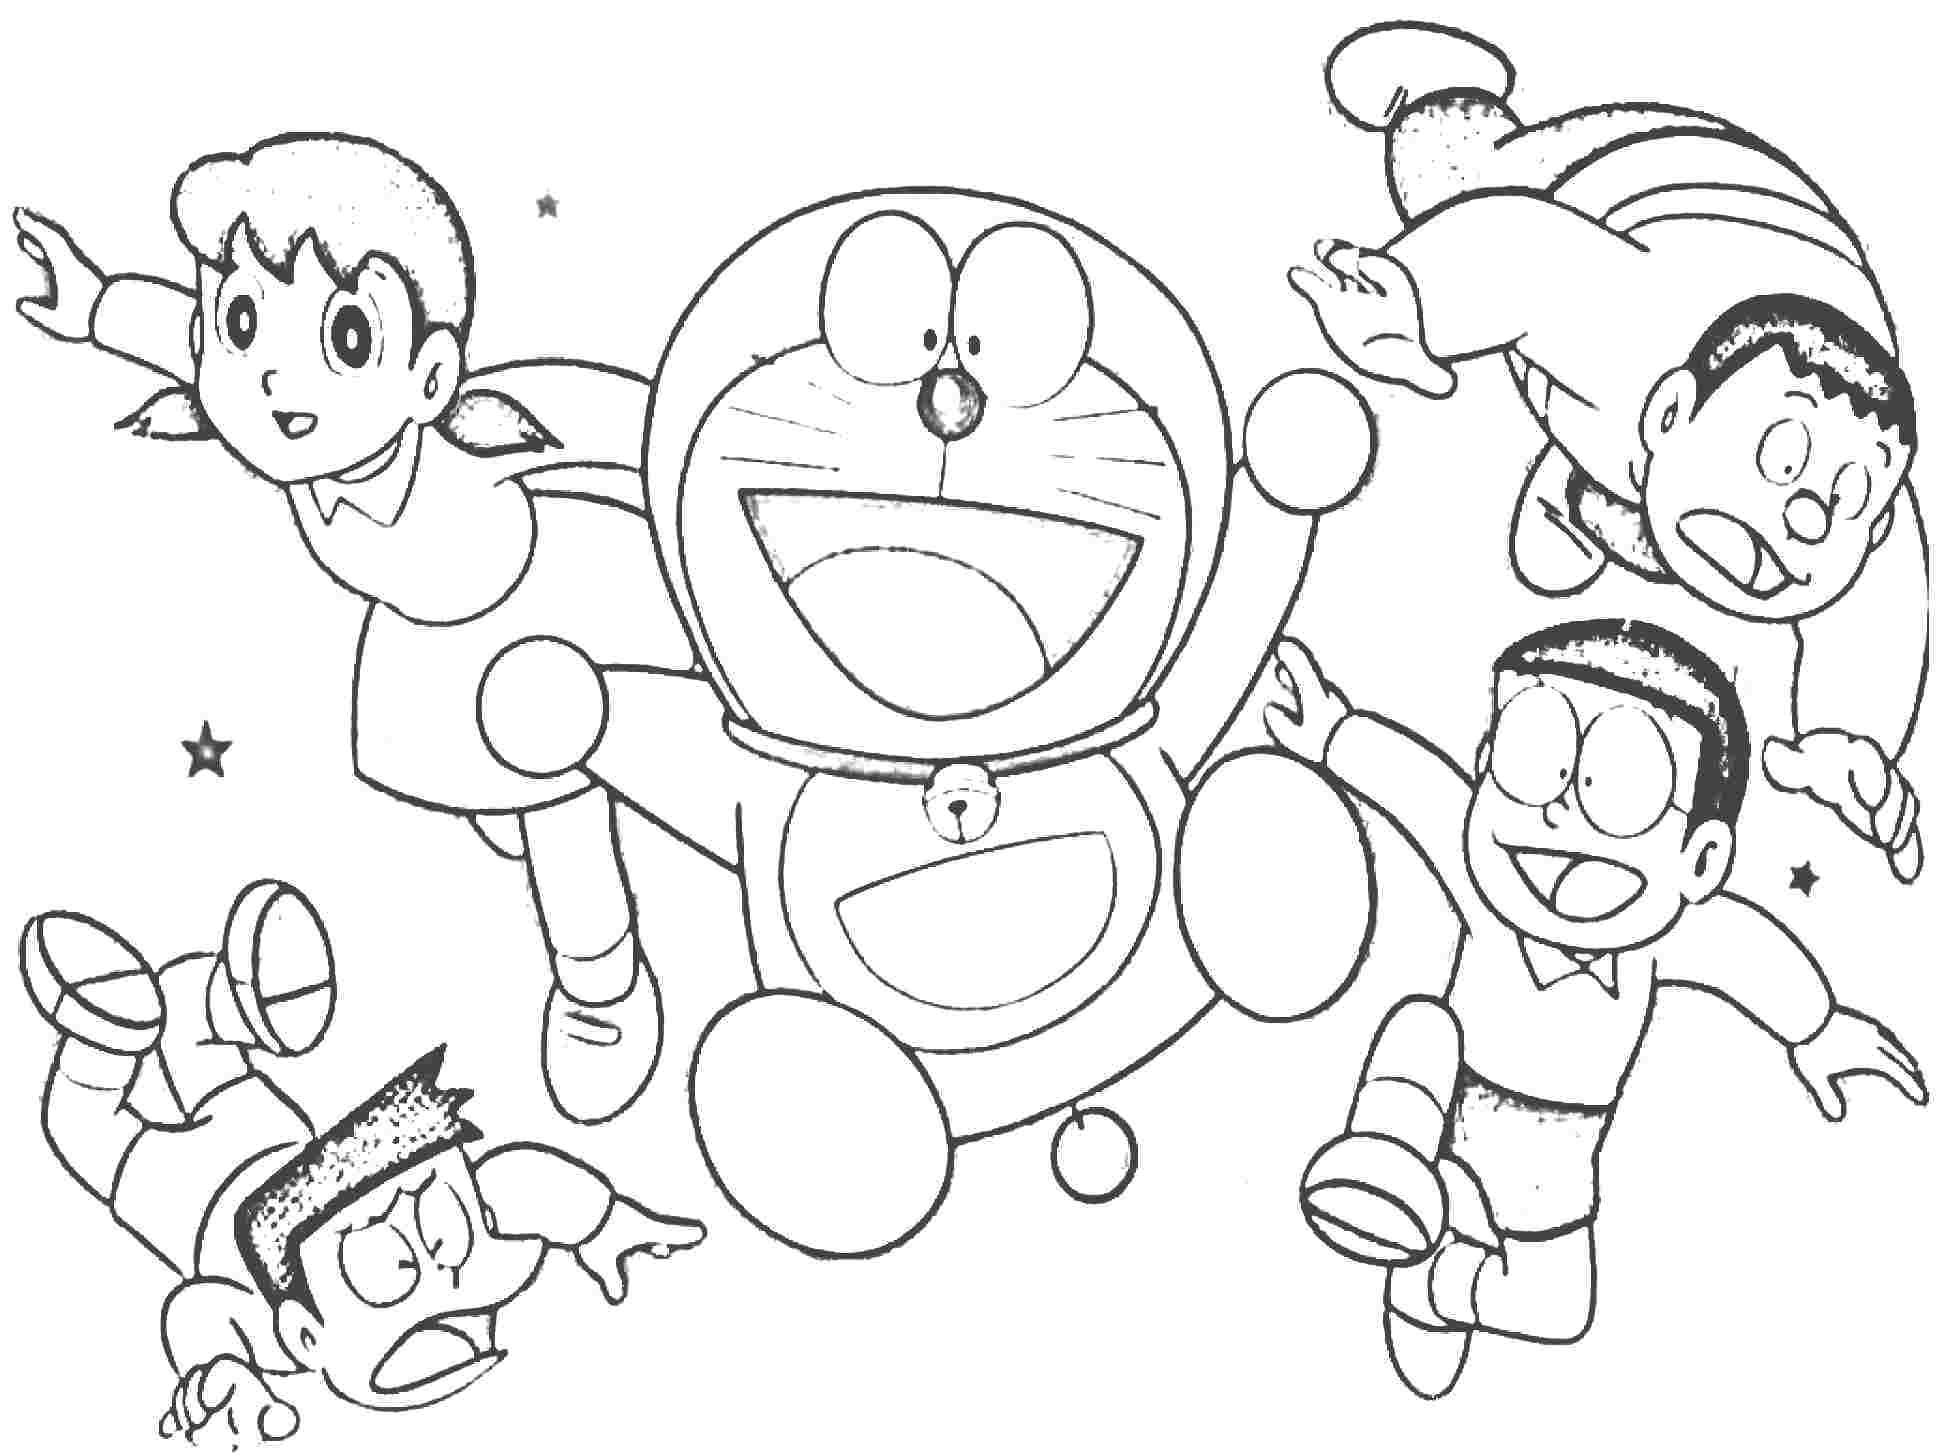 cheerful doraemon coloring book makes your toddlers love to color coloring pages